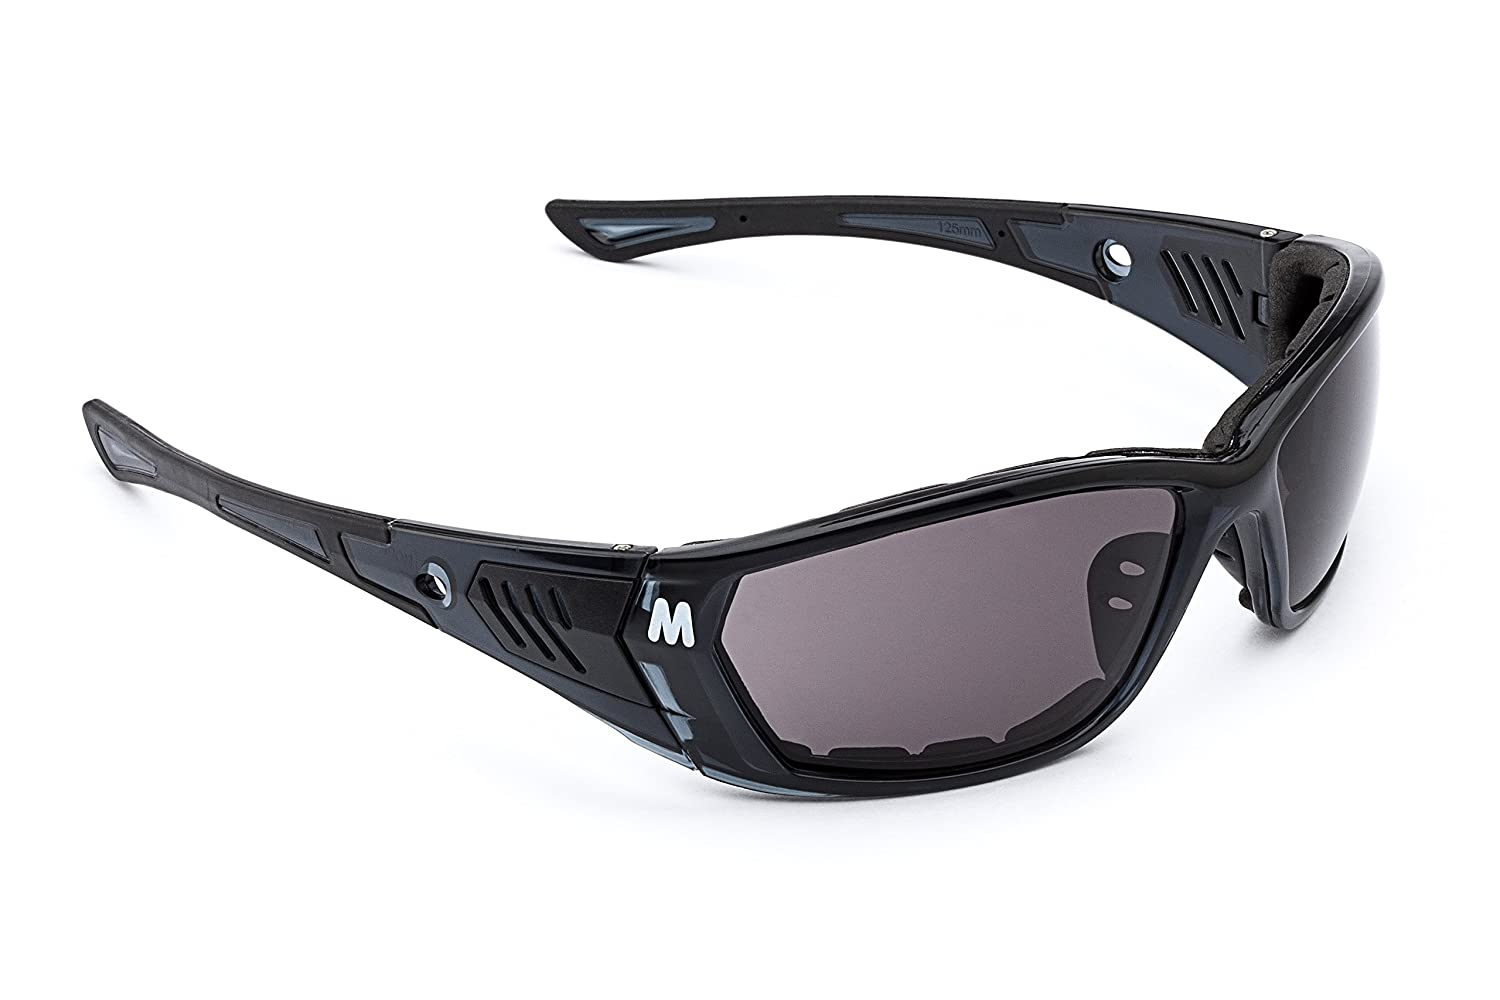 483bd0f9062 MORR Protective Gear MORR STARRLEY Z7 Sport Sunglasses with Wraparound Fog  ARMORR Anti-Fog Lenses